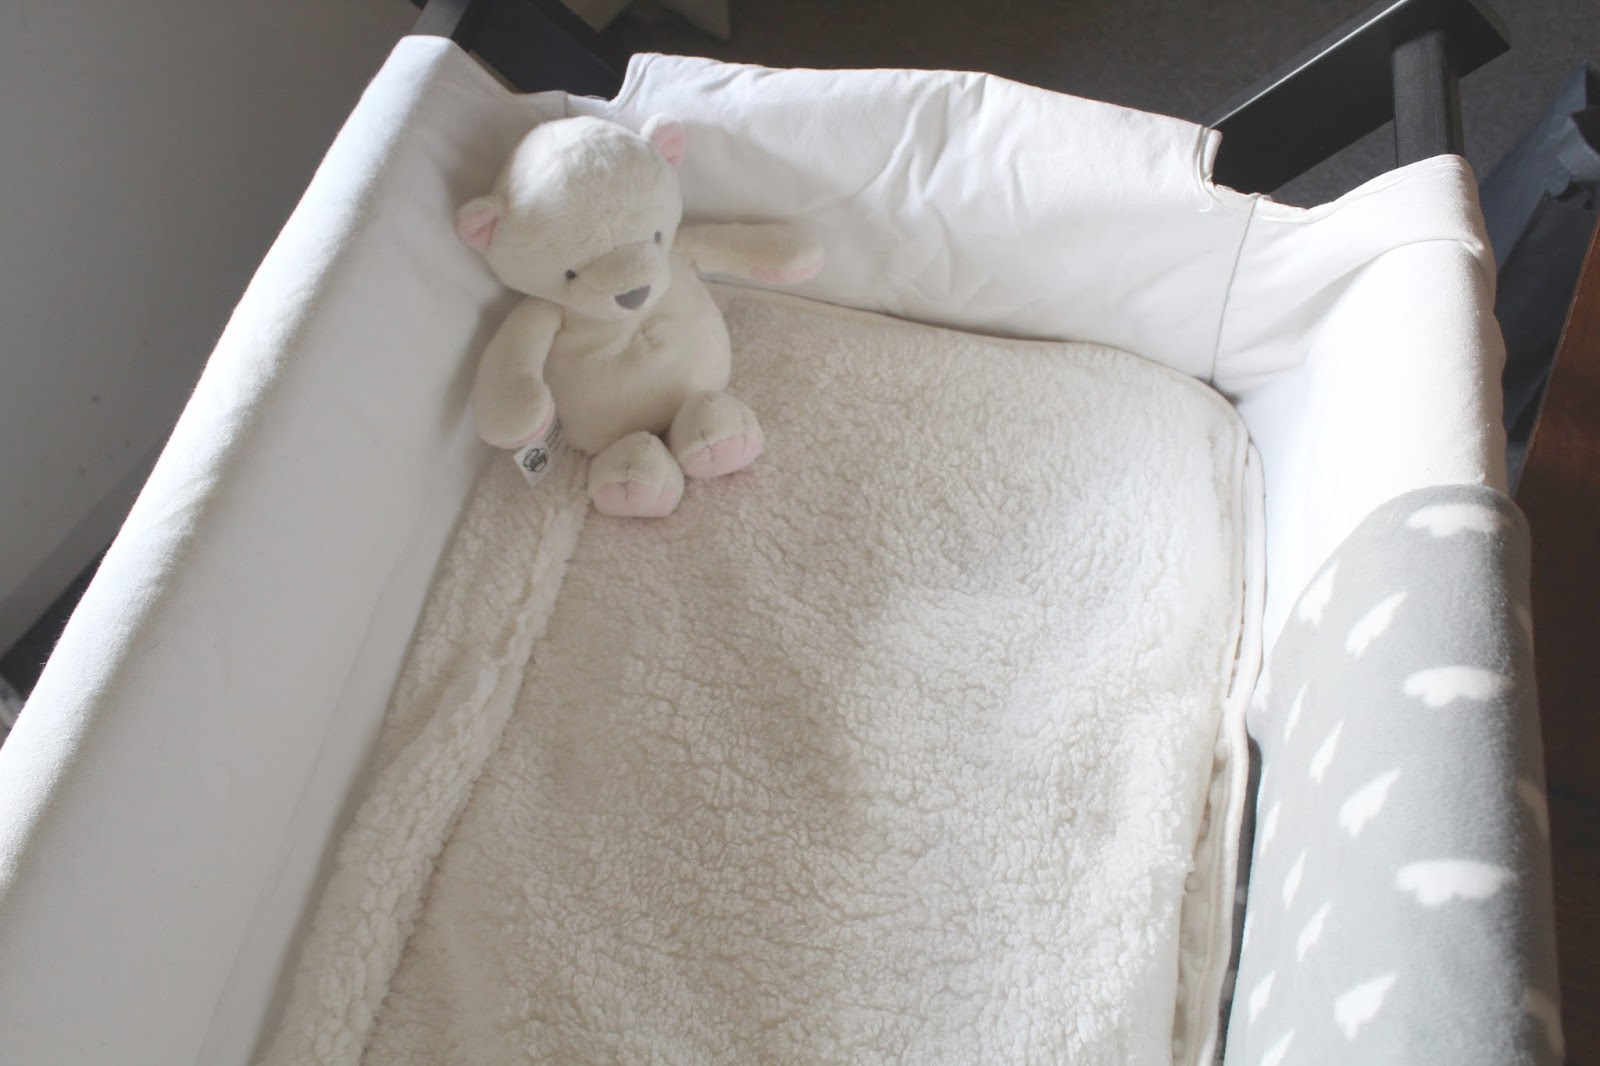 close up of baby's crib with soft blanket and teddy